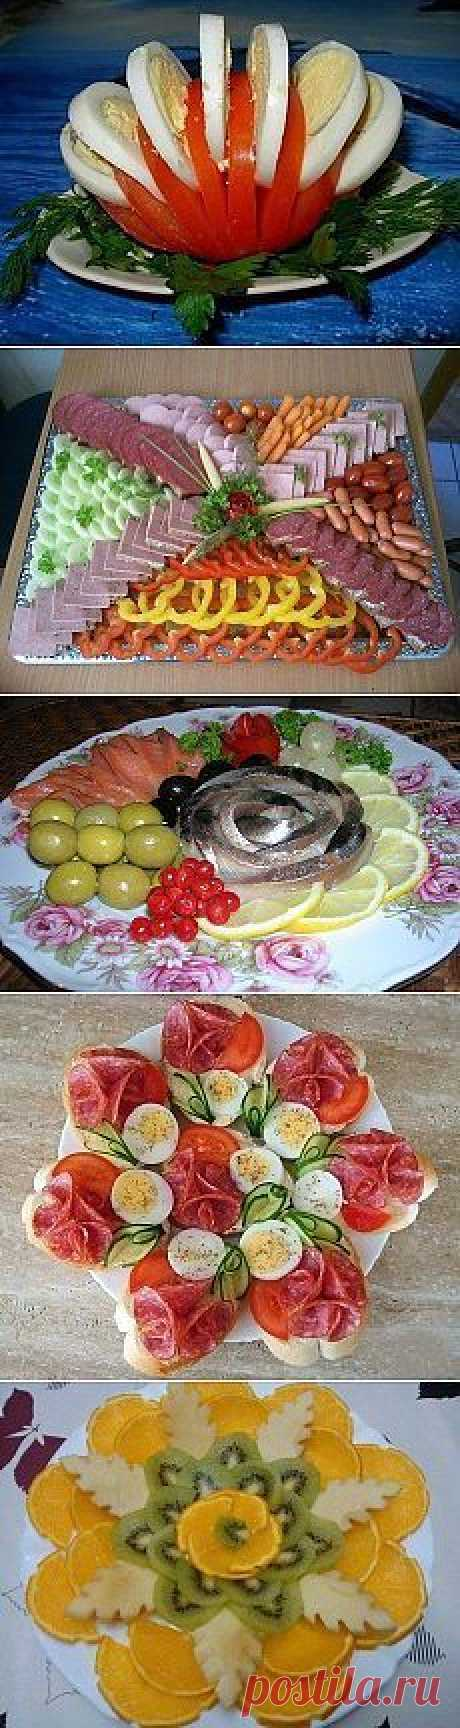 beautiful registration of dishes